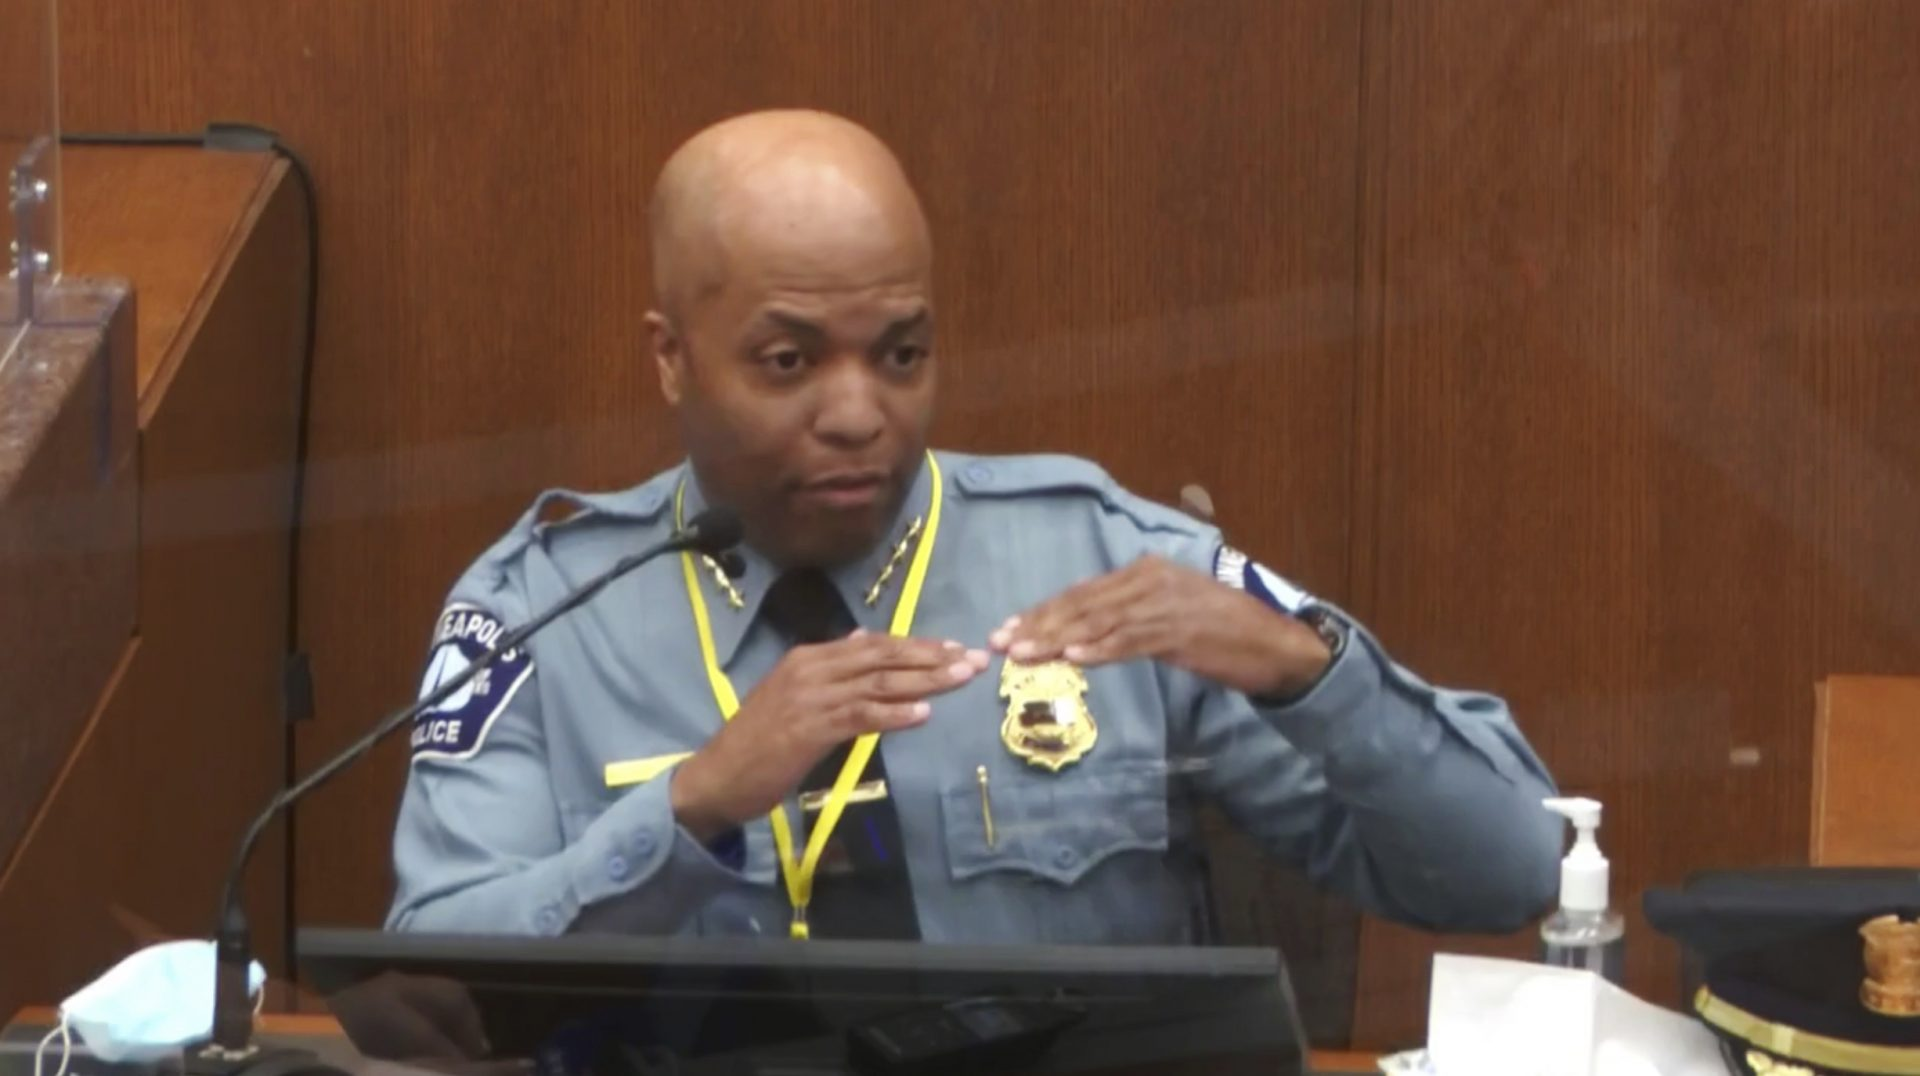 In this image from video, witness Minneapolis Police Chief Medaria Arradondo testifies as Hennepin County Judge Peter Cahill presides Monday, April 5, 2021, in the trial of former Minneapolis police Officer Derek Chauvin at the Hennepin County Courthouse in Minneapolis. Chauvin is charged in the May 25, 2020 death of George Floyd.